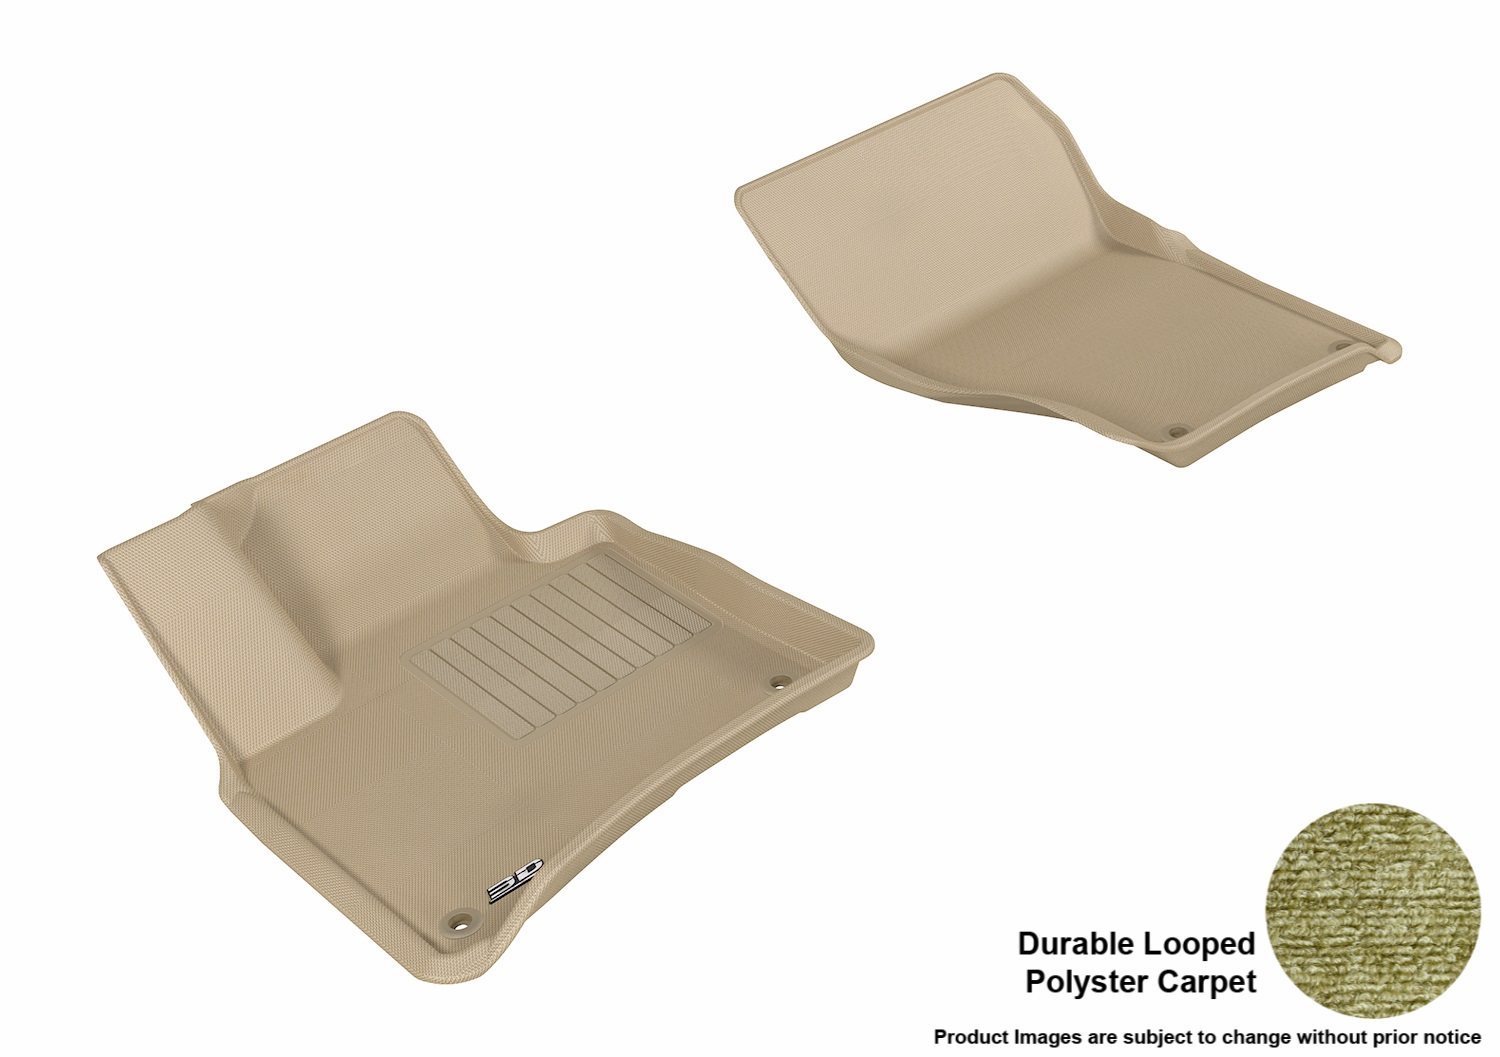 3DM-L1PO01012202 3D MAXpider Floor Mat Set; Tan; Durable Looped Poly Carpet; Front